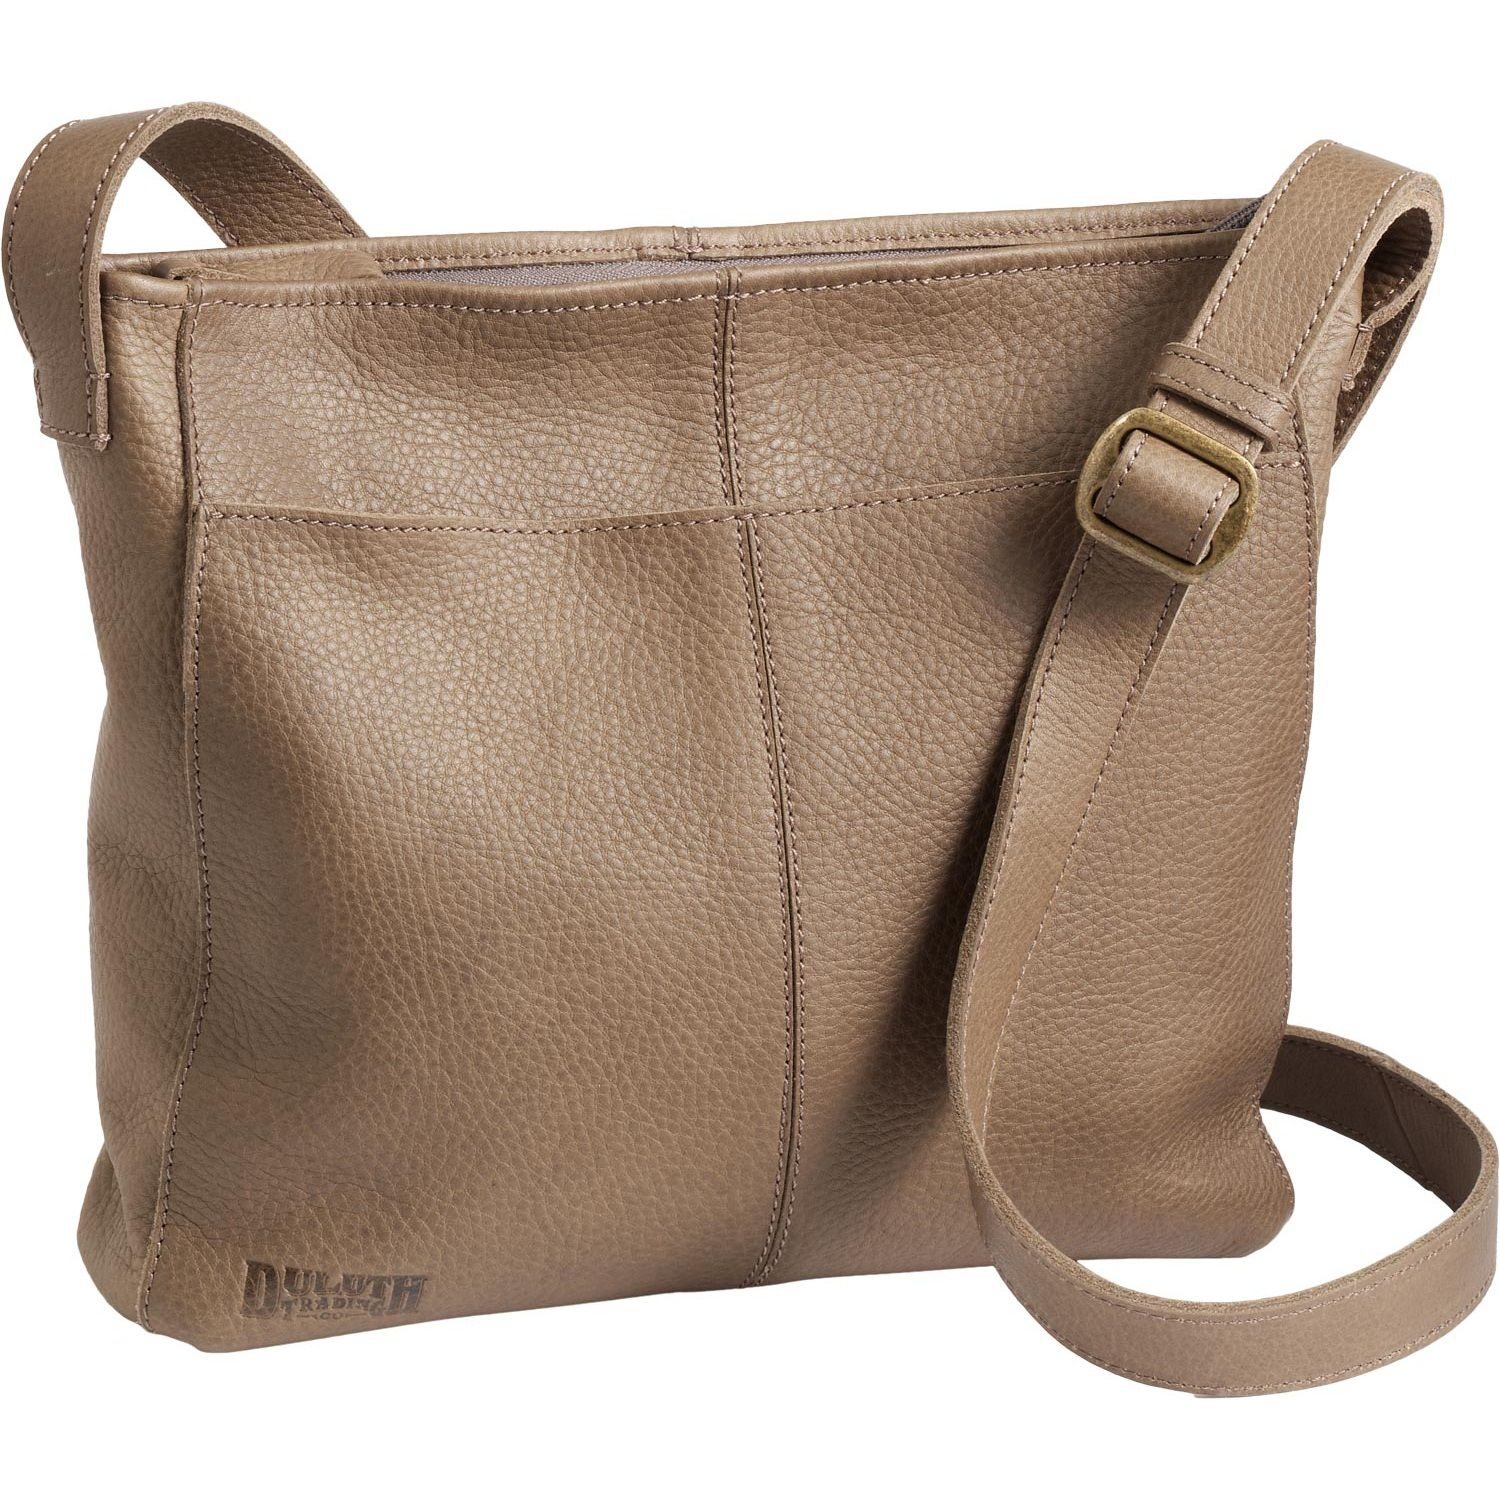 Women's Lifetime Leather Medium Sling Bag - Duluth Trading | Can't ...